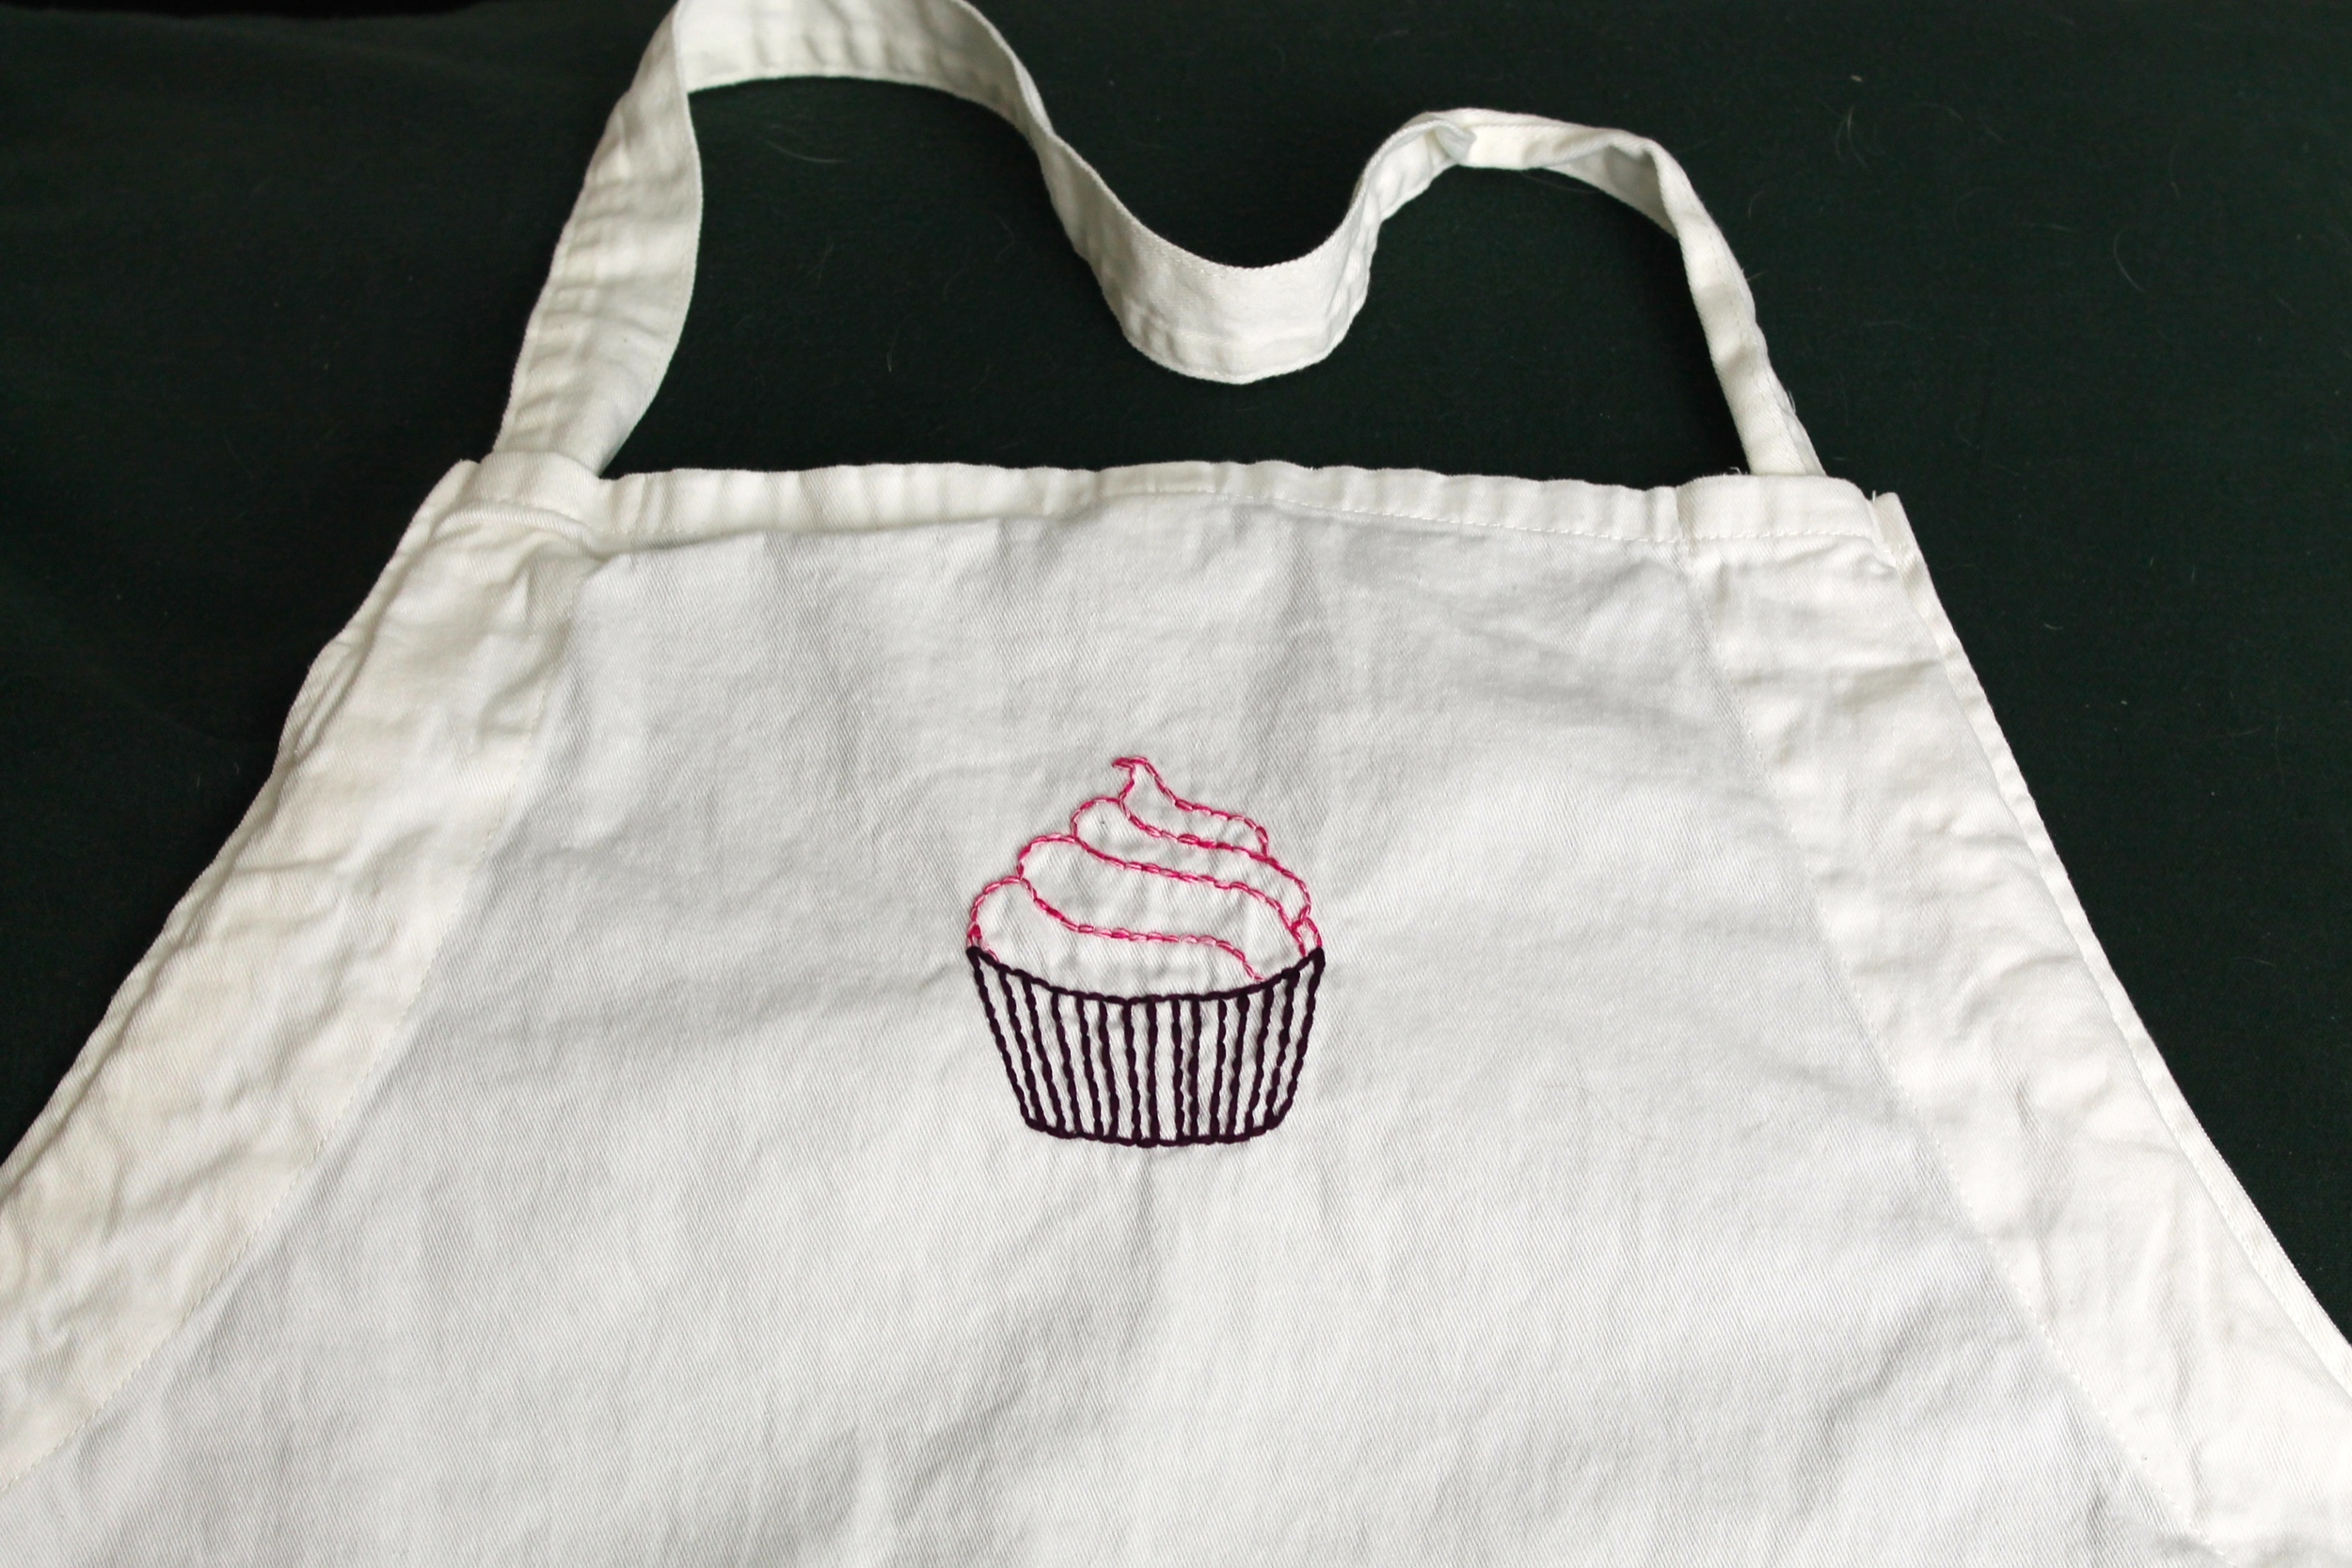 Apron with hand embroidered cupcake on it